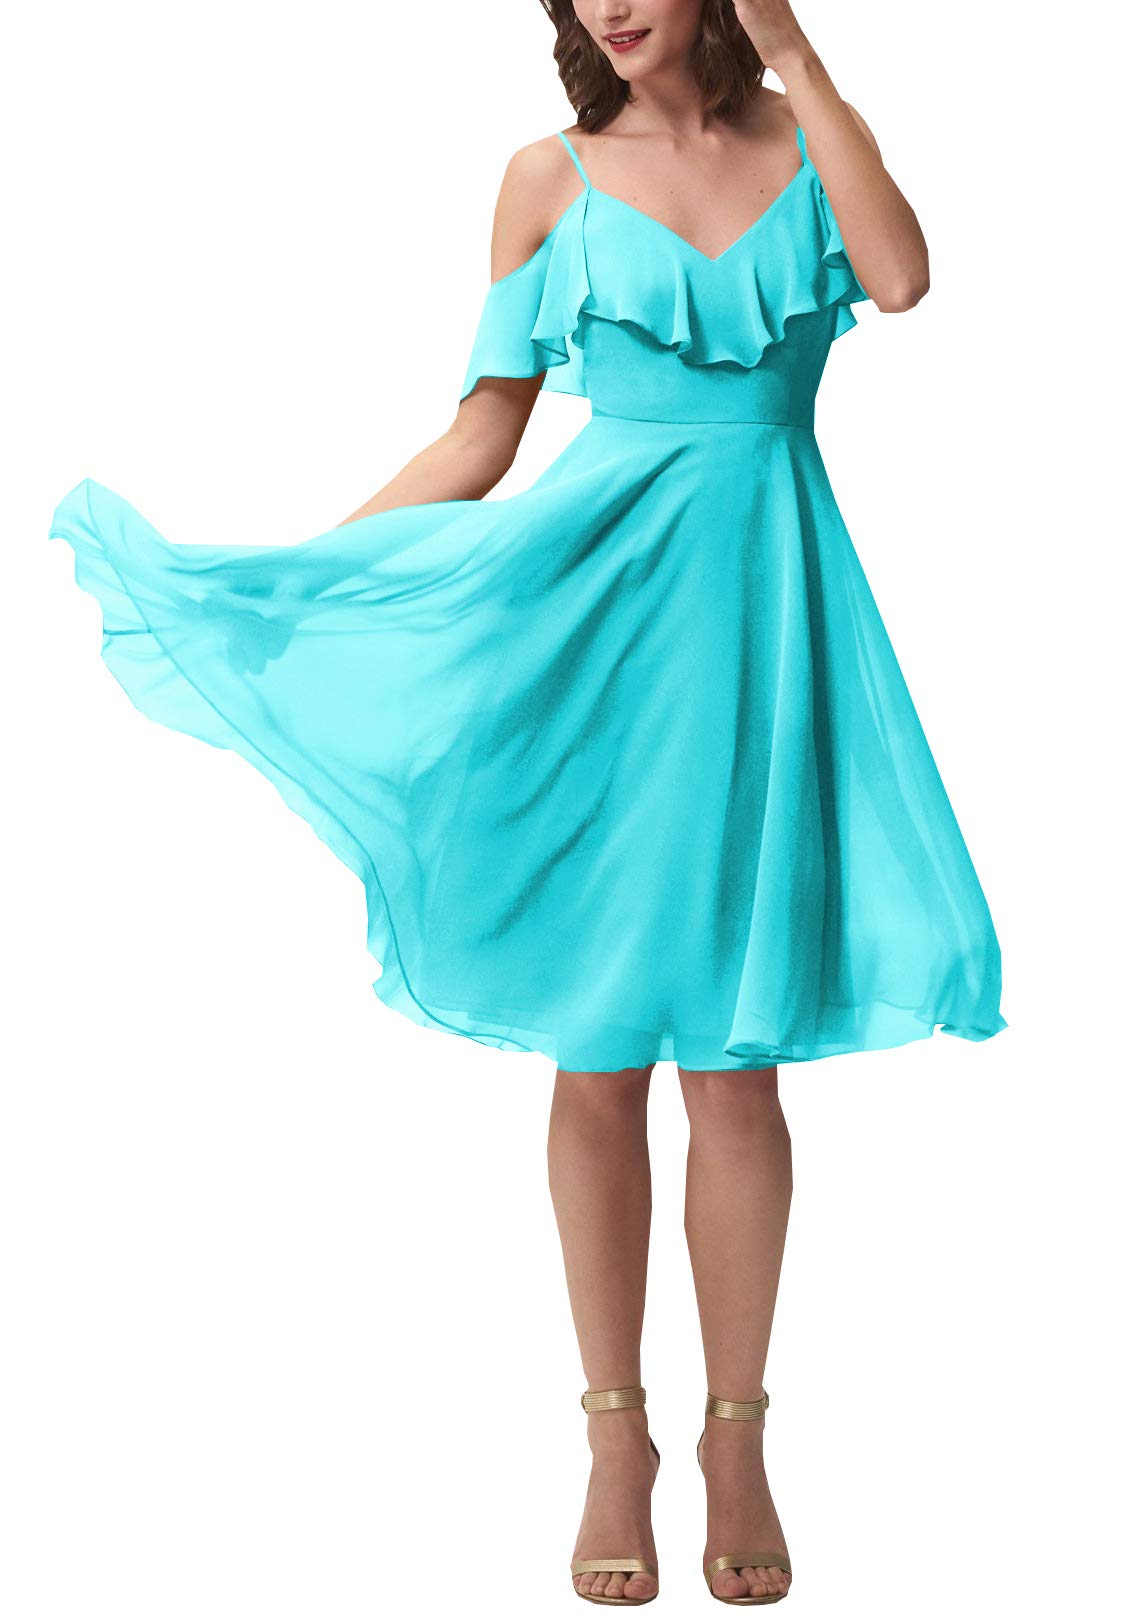 Available at Amazon: Now and Forever Women's Short A-Line V Neck Ruffled Prom Bridesmaid Dress for Formal Party Gowns